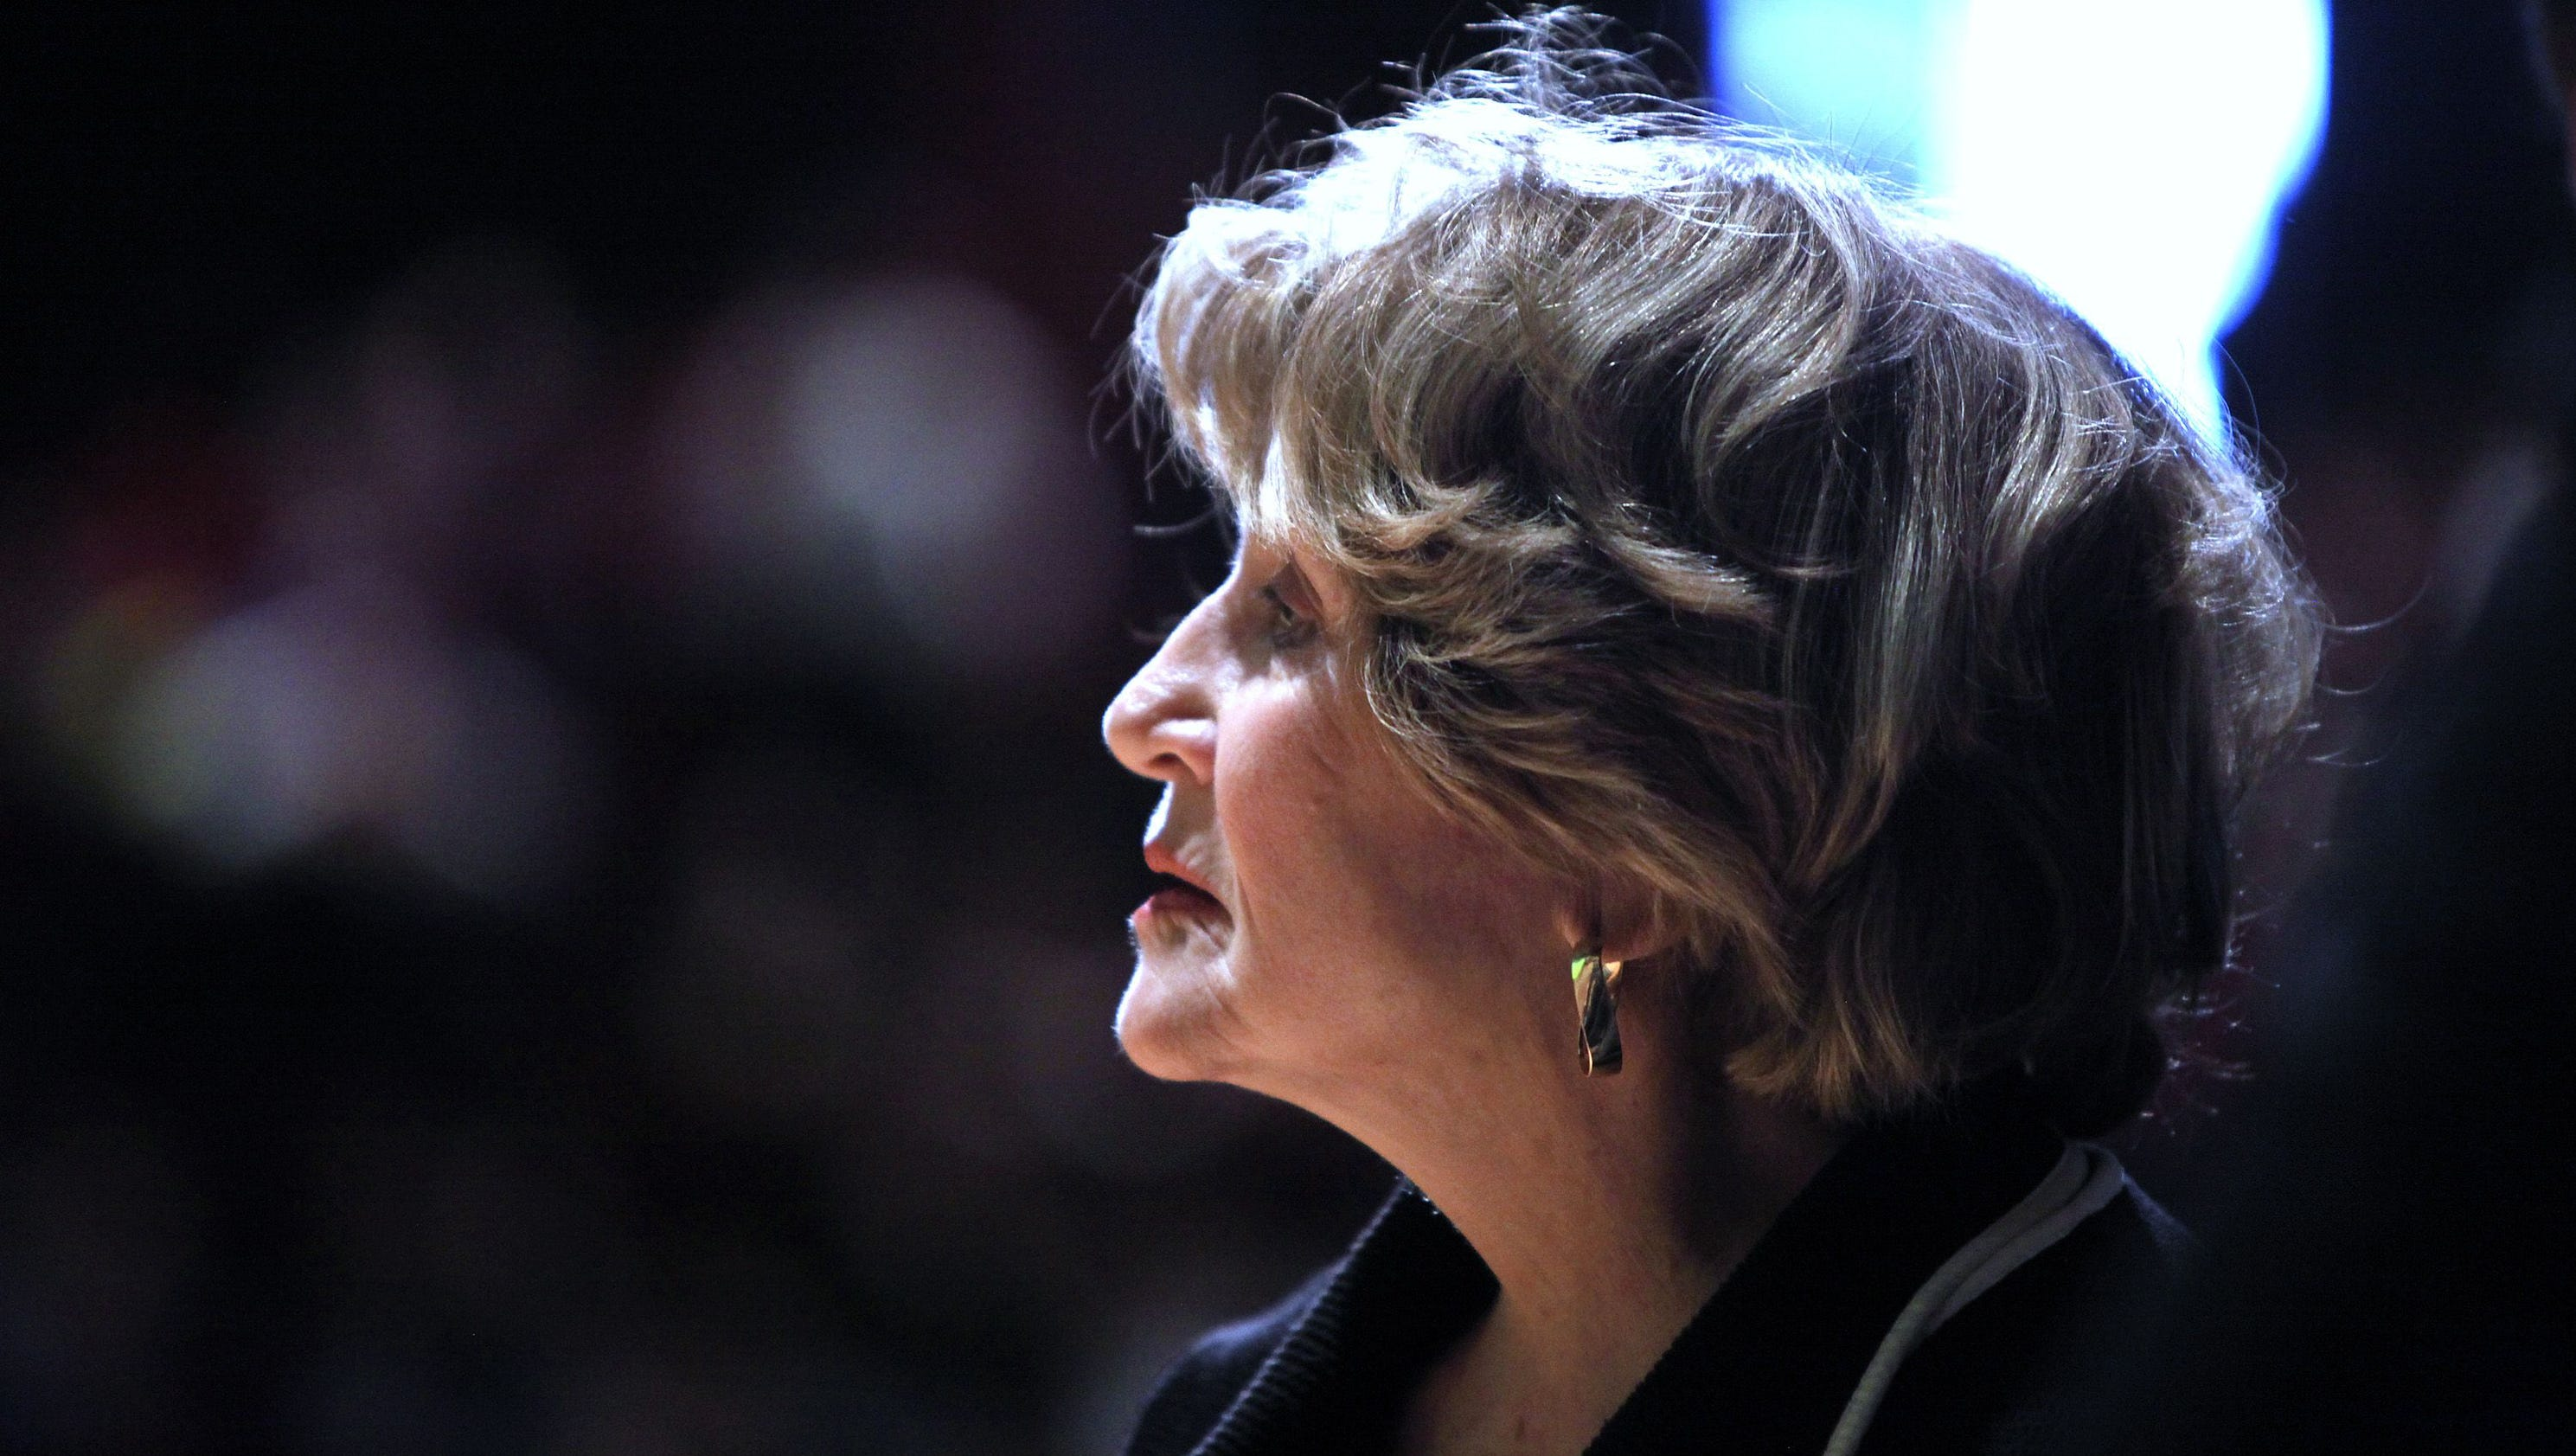 10 fast facts about Rep. Louise Slaughter